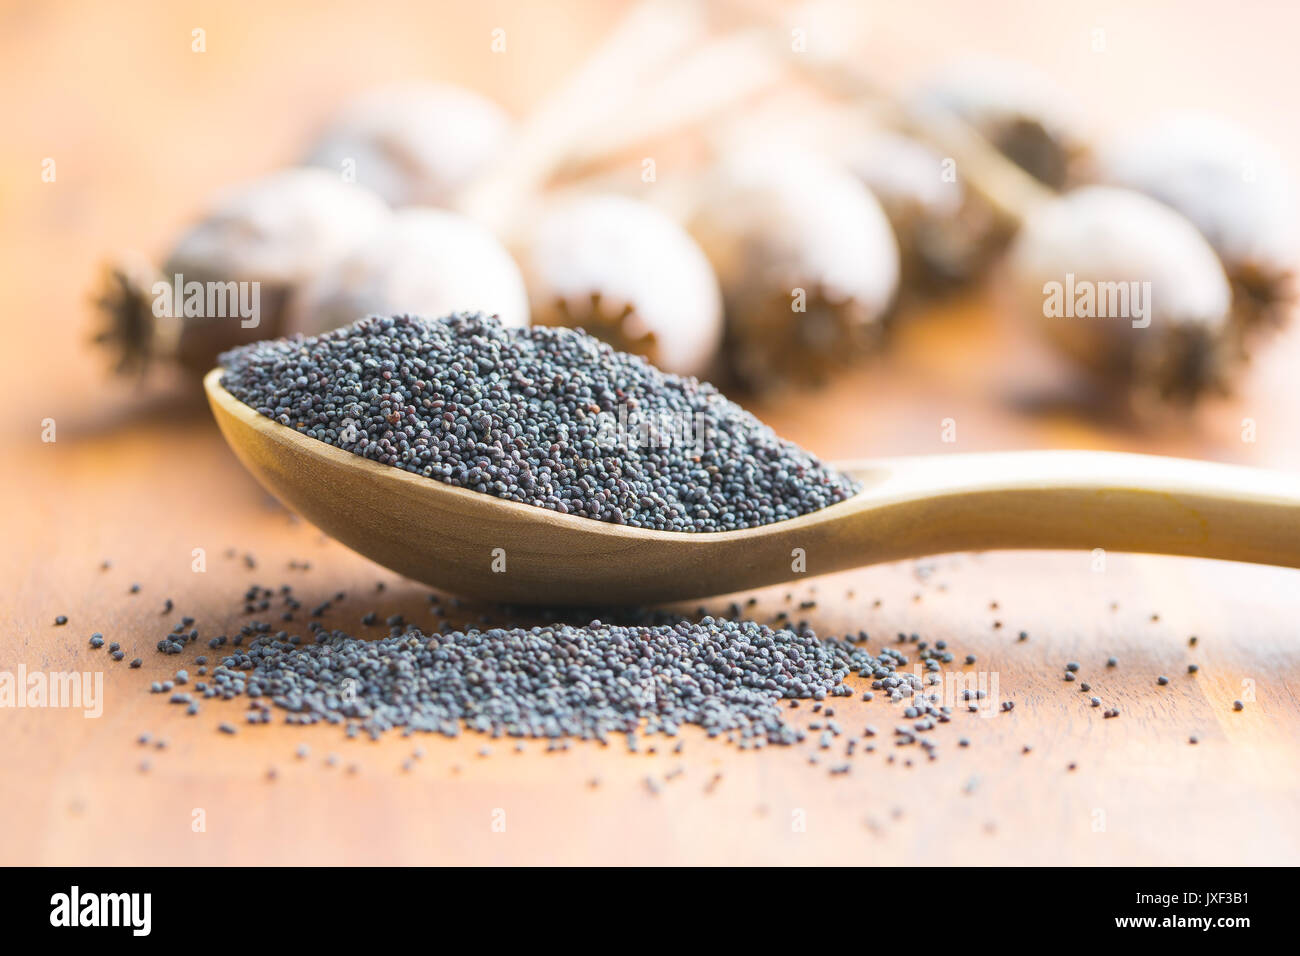 Dried poppy heads and seeds. Blue poppy. - Stock Image